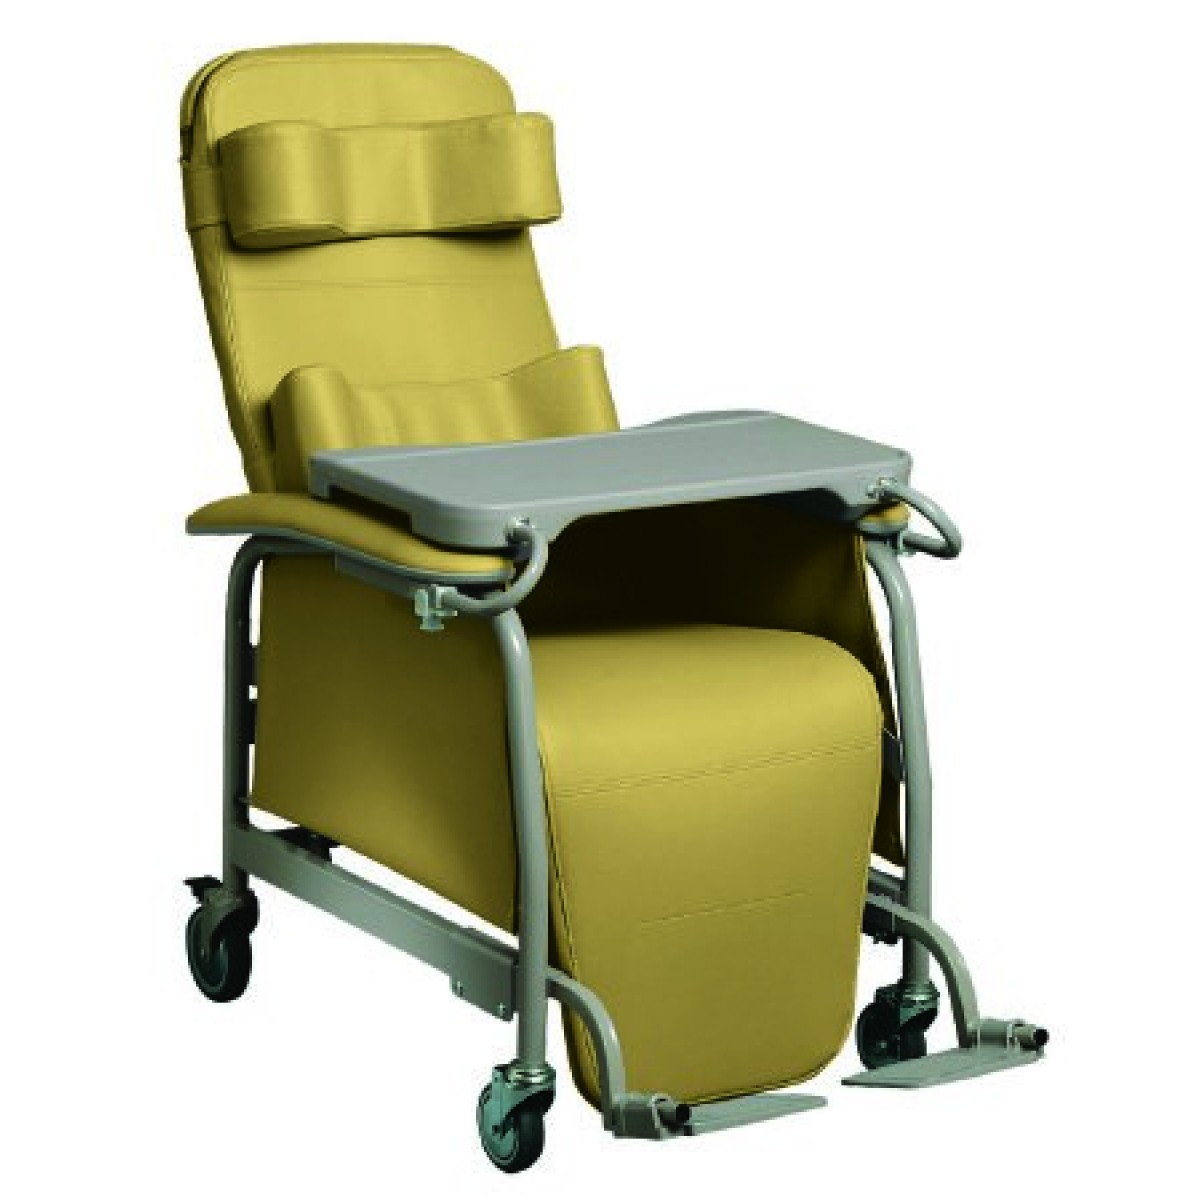 Geriatric Chairs Lumex Preferred Care Infinite Position Recliner 20 Inch